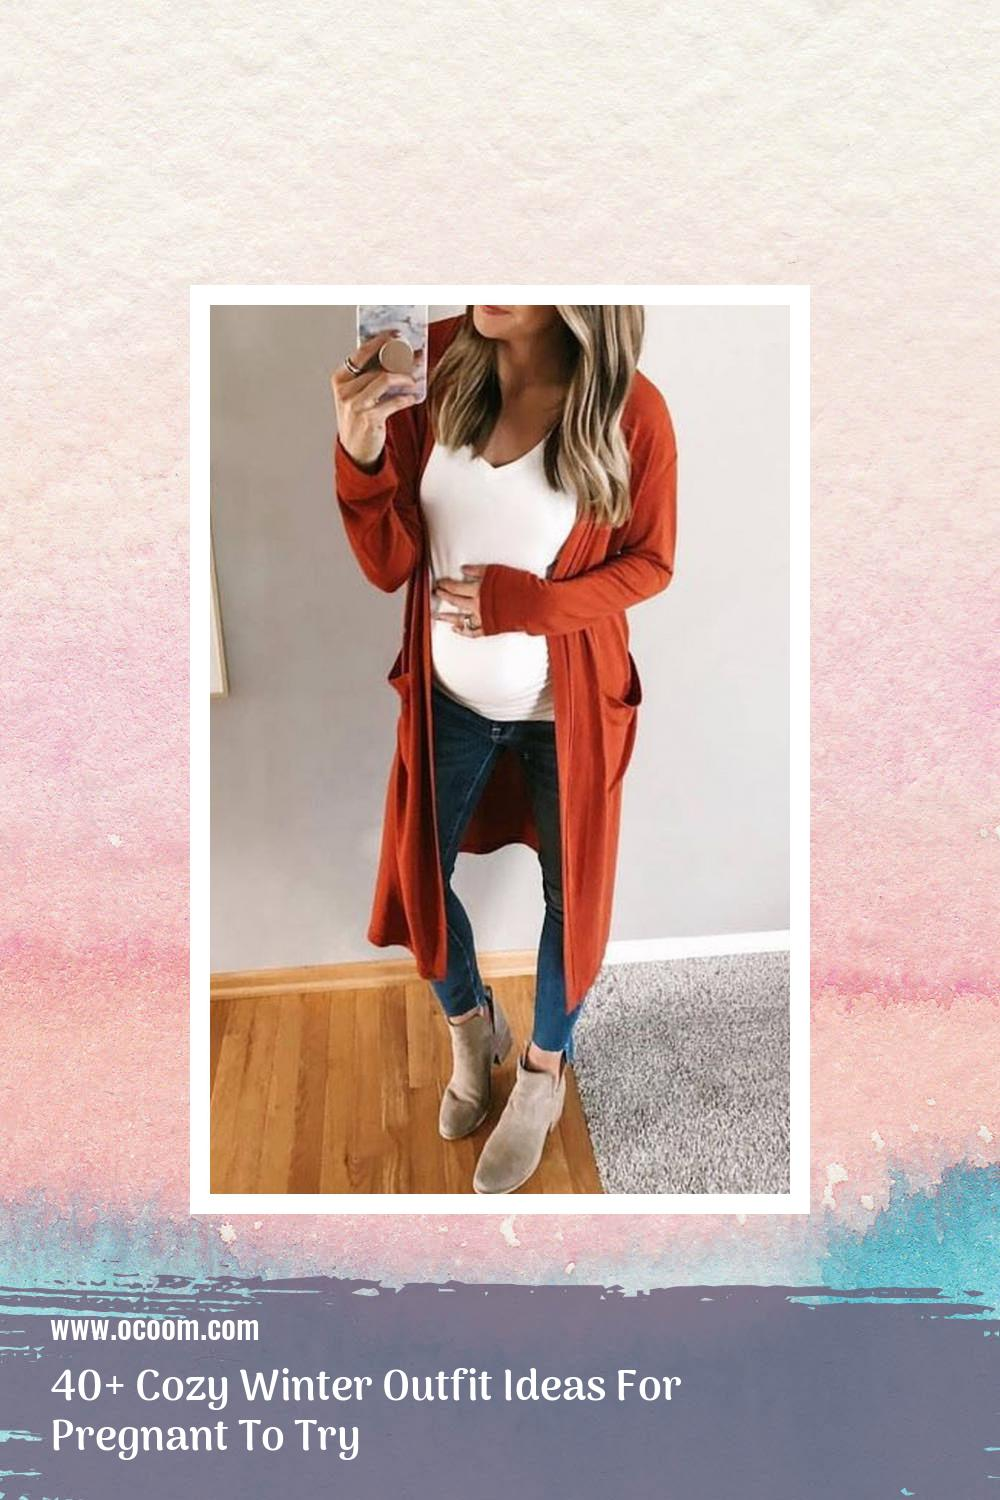 40+ Cozy Winter Outfit Ideas For Pregnant To Try 37